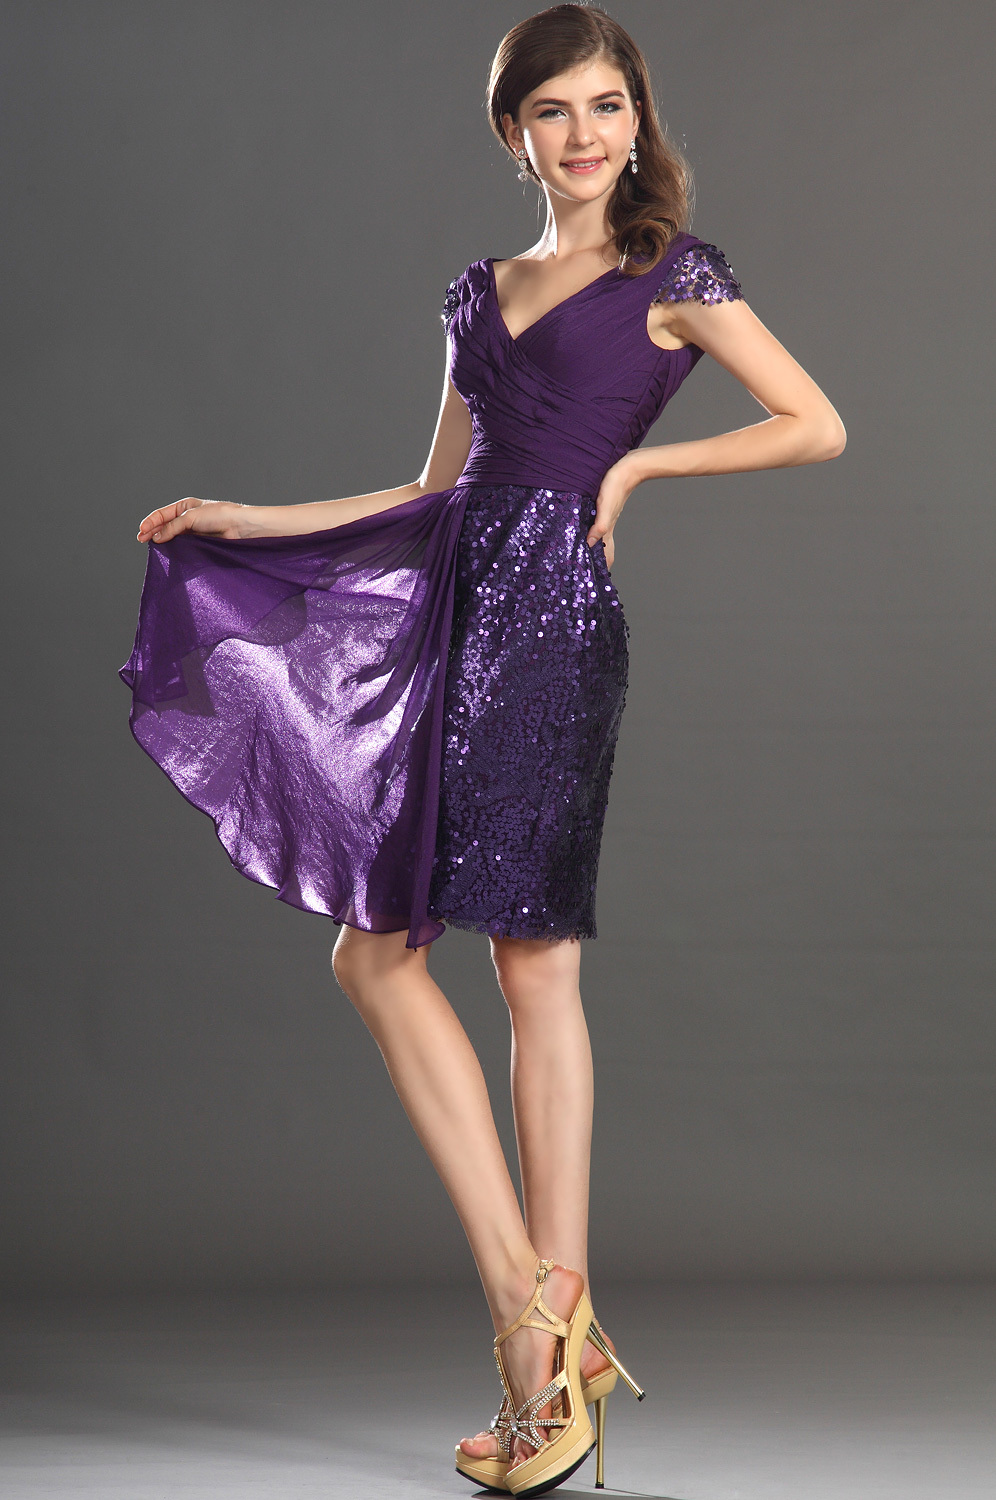 Wedding Purple Sequin Dress purple sequin coctail dress cap sleeves v neck slim fitted metallic short cocktail party in dresses from weddings event